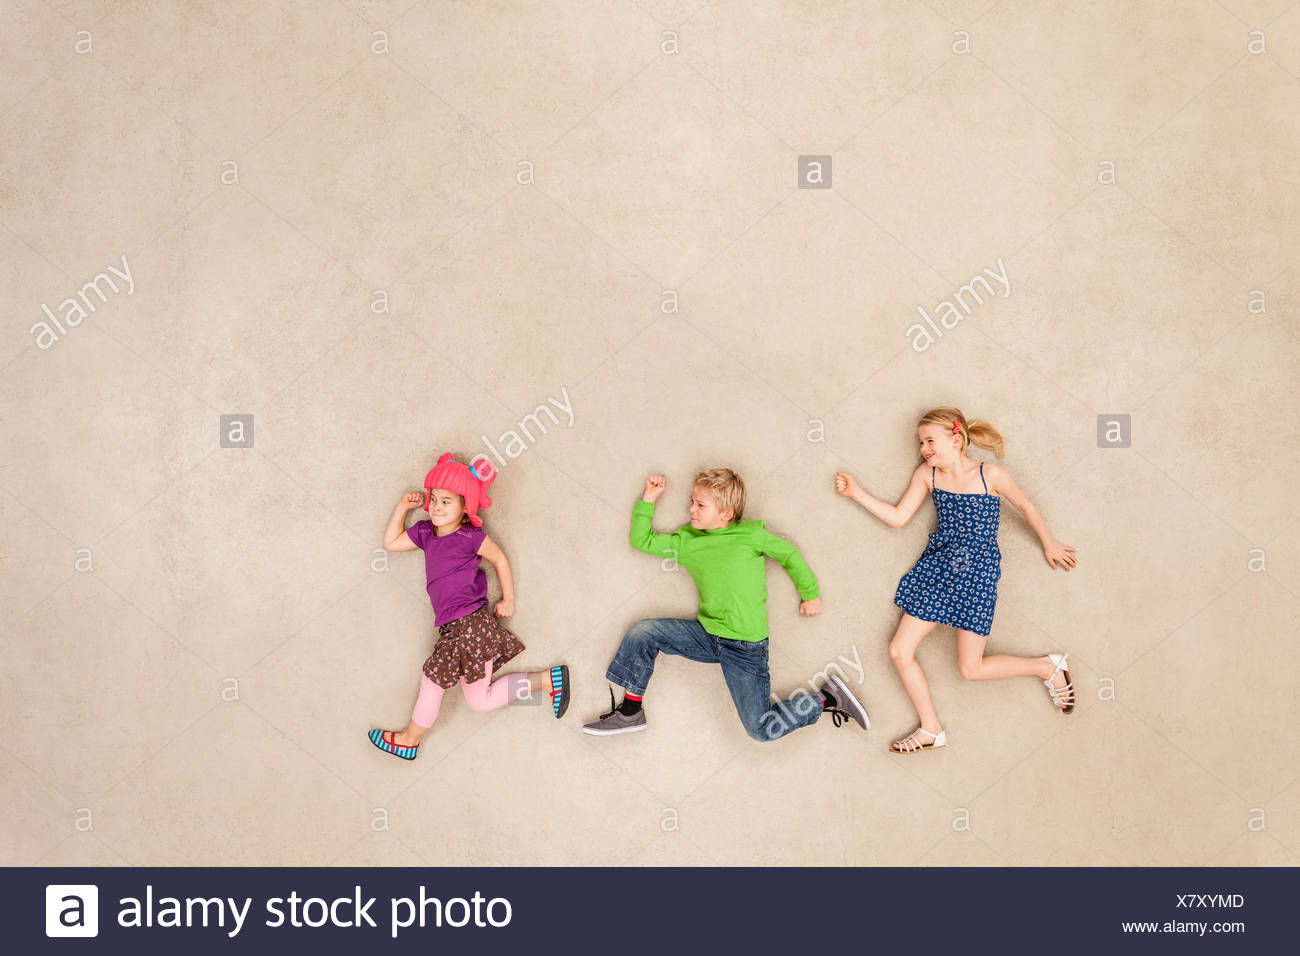 Children playing tag - Stock Image